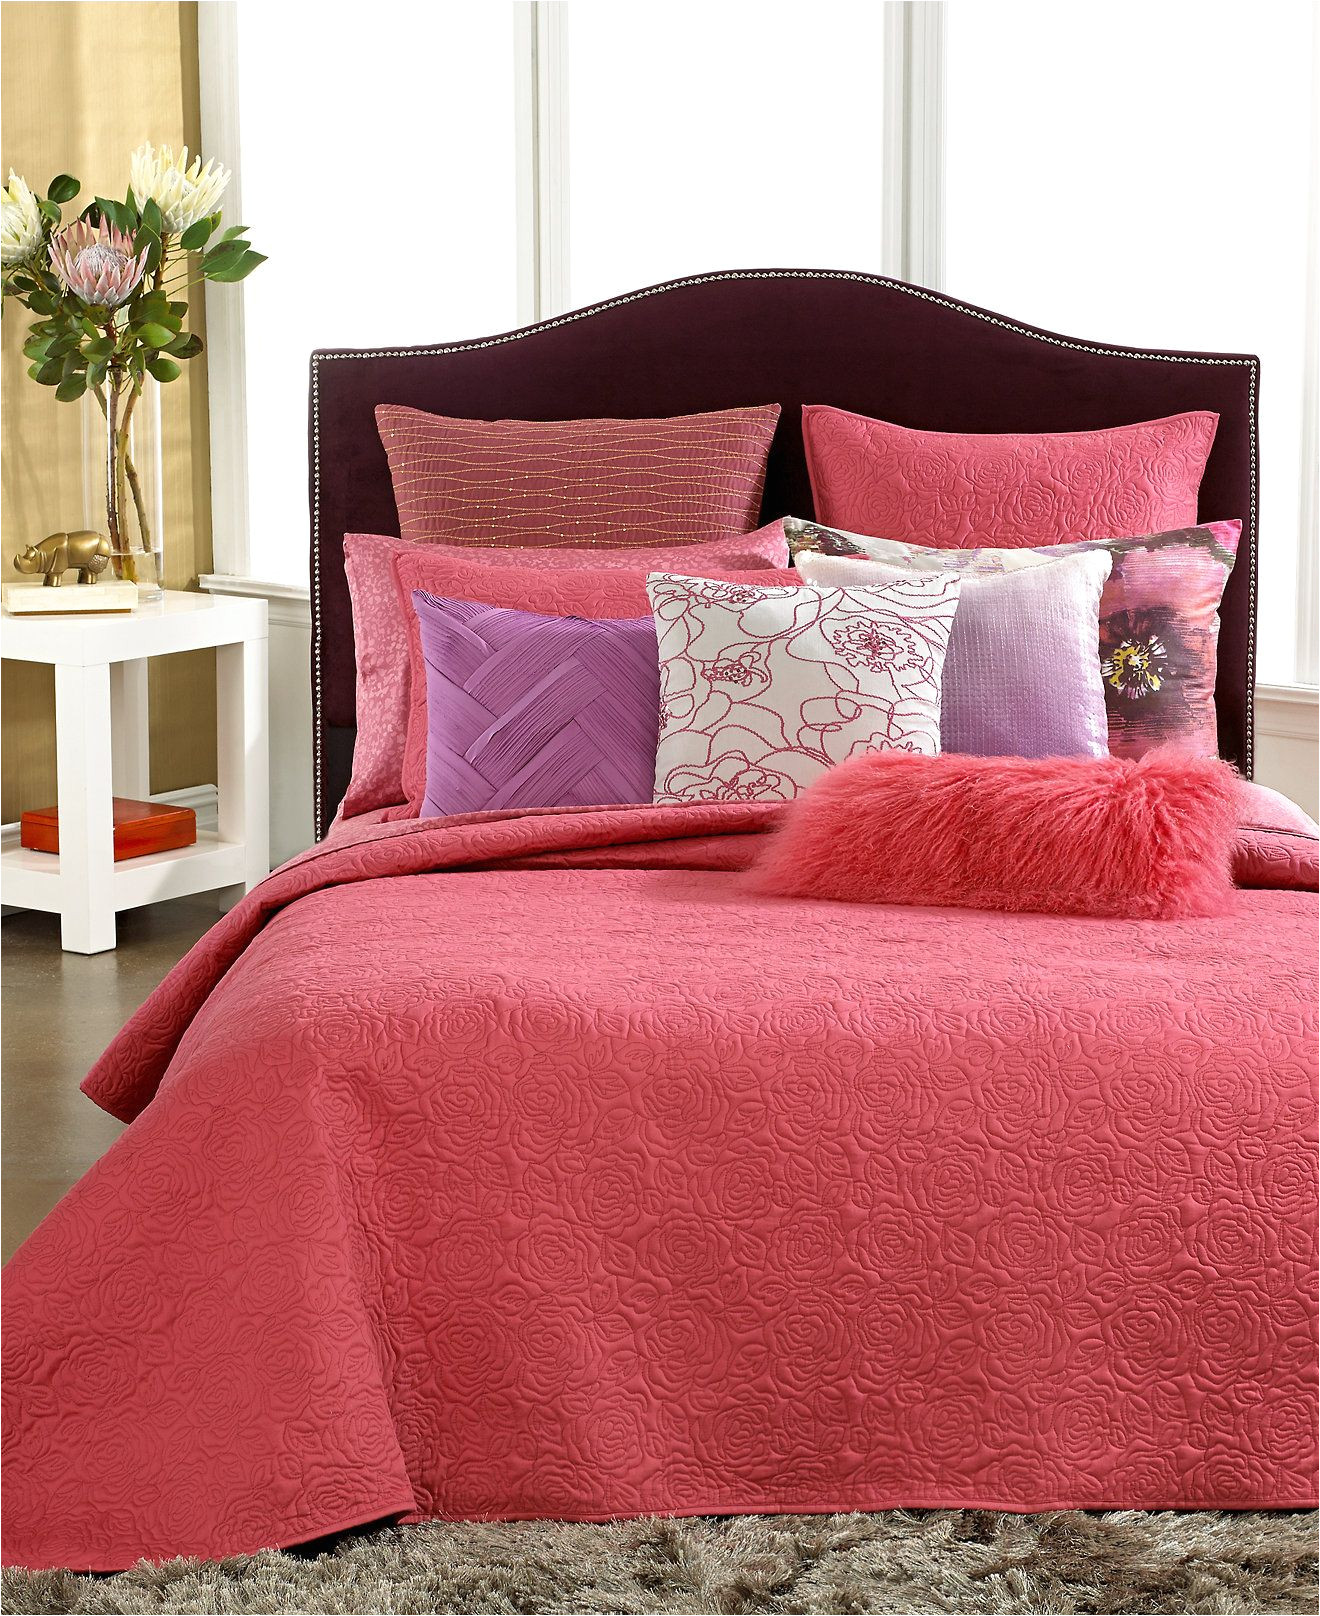 inc international concepts ava coverlet collection quilts bedspreads bed bath macy s